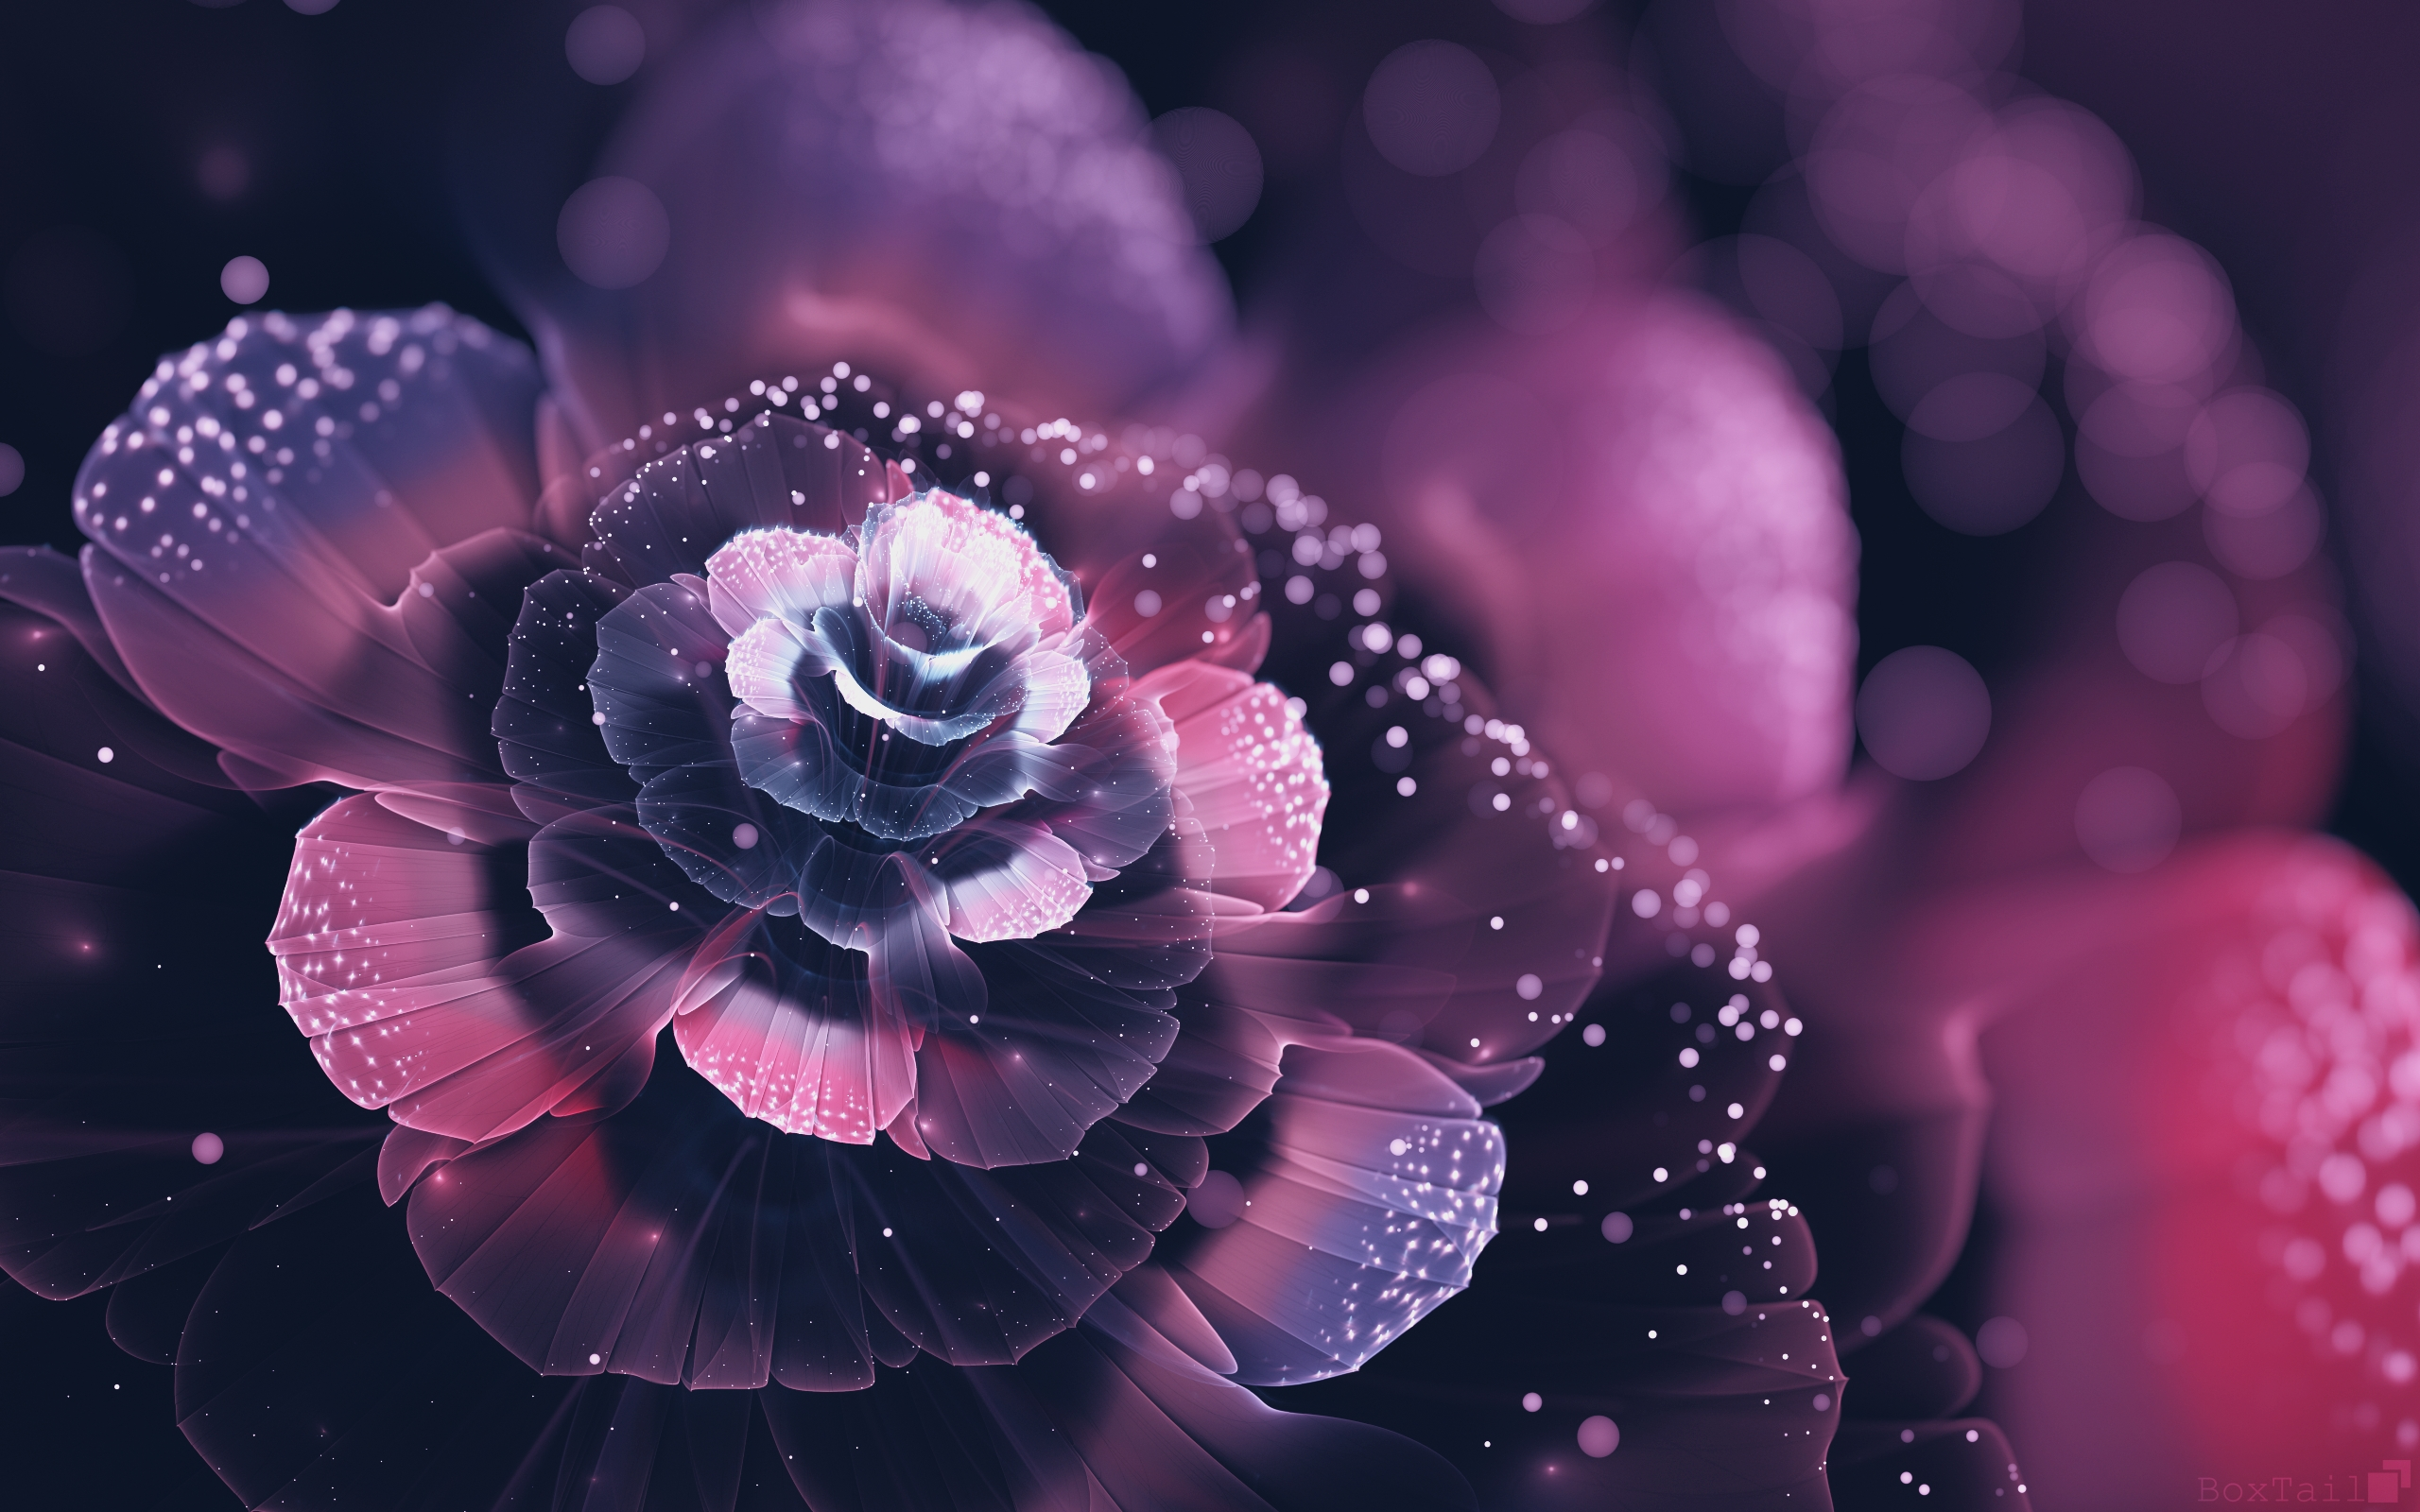 Wallpaper Design of a flower abstract